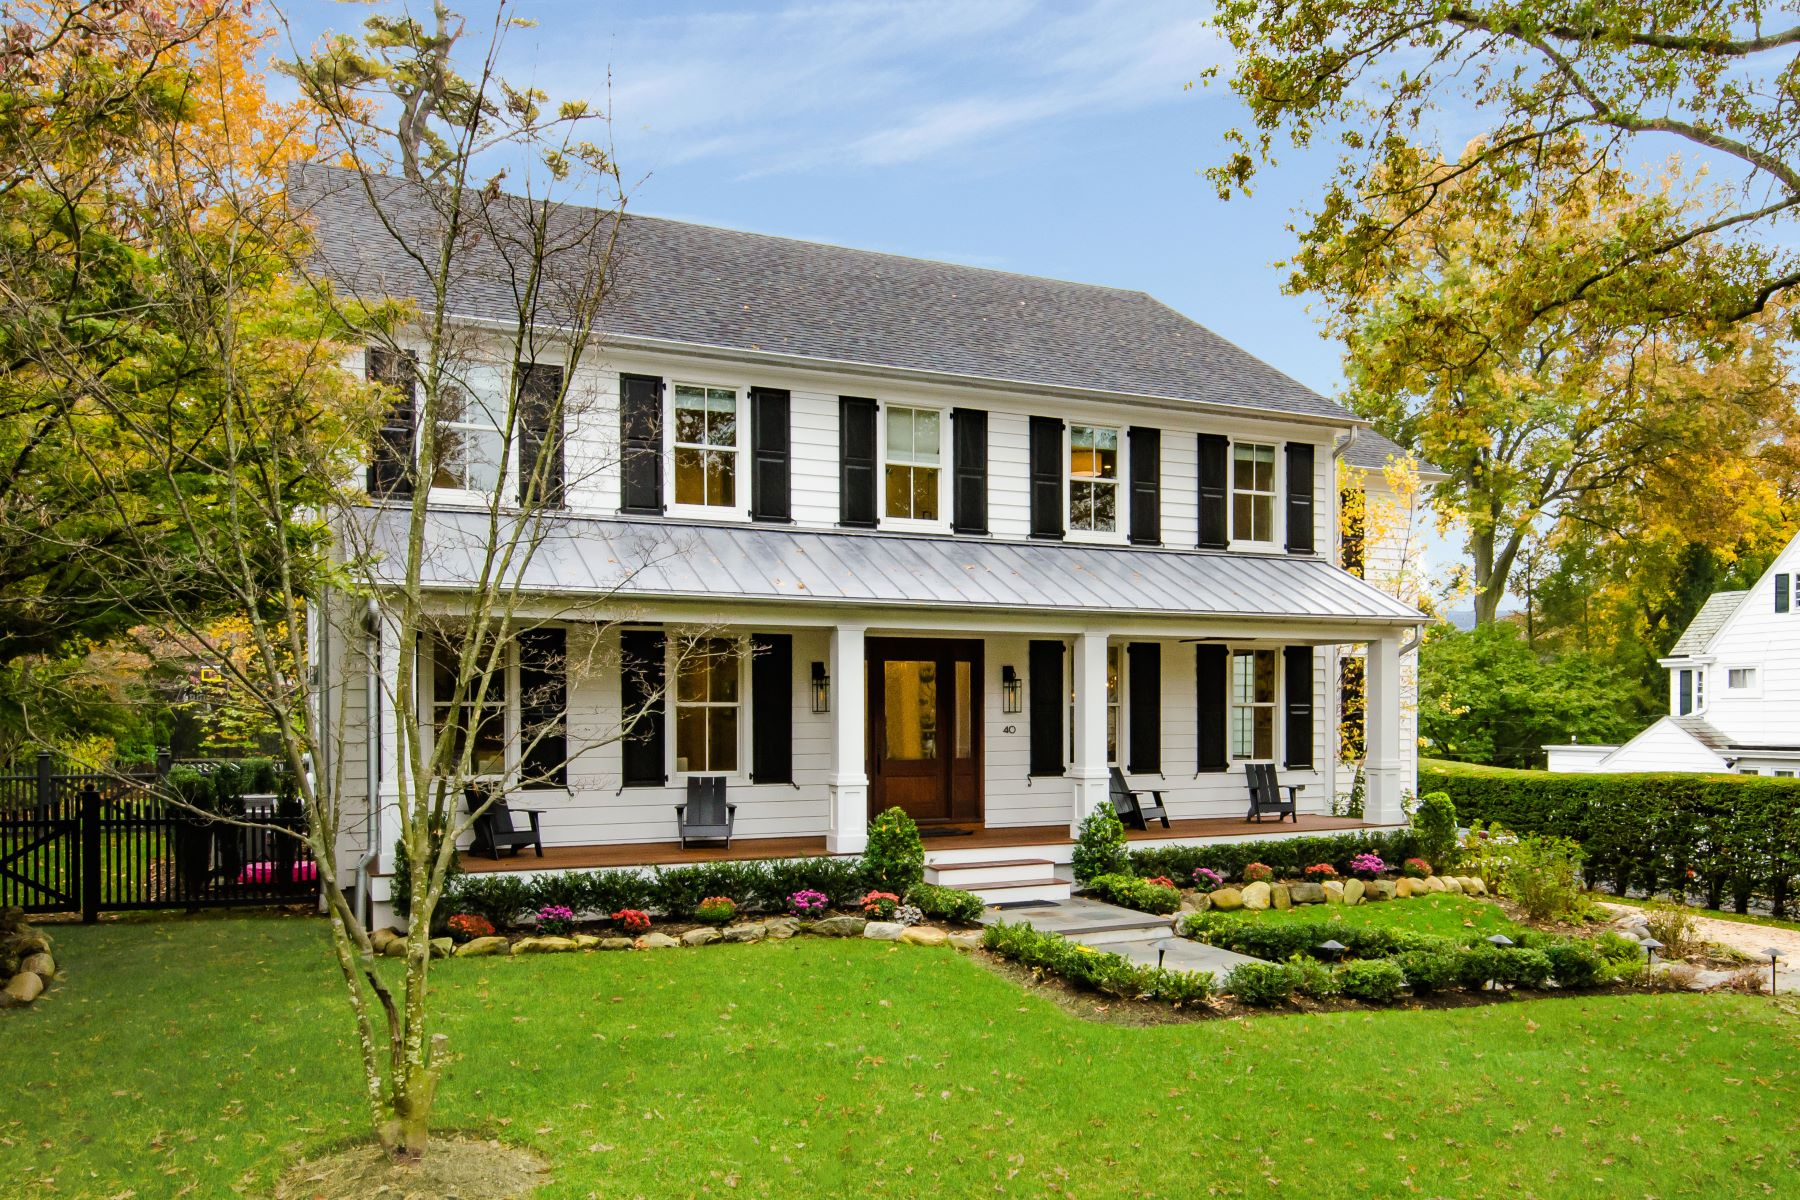 Single Family Homes for Sale at Manhasset 40 South Dr Manhasset, New York 11030 United States